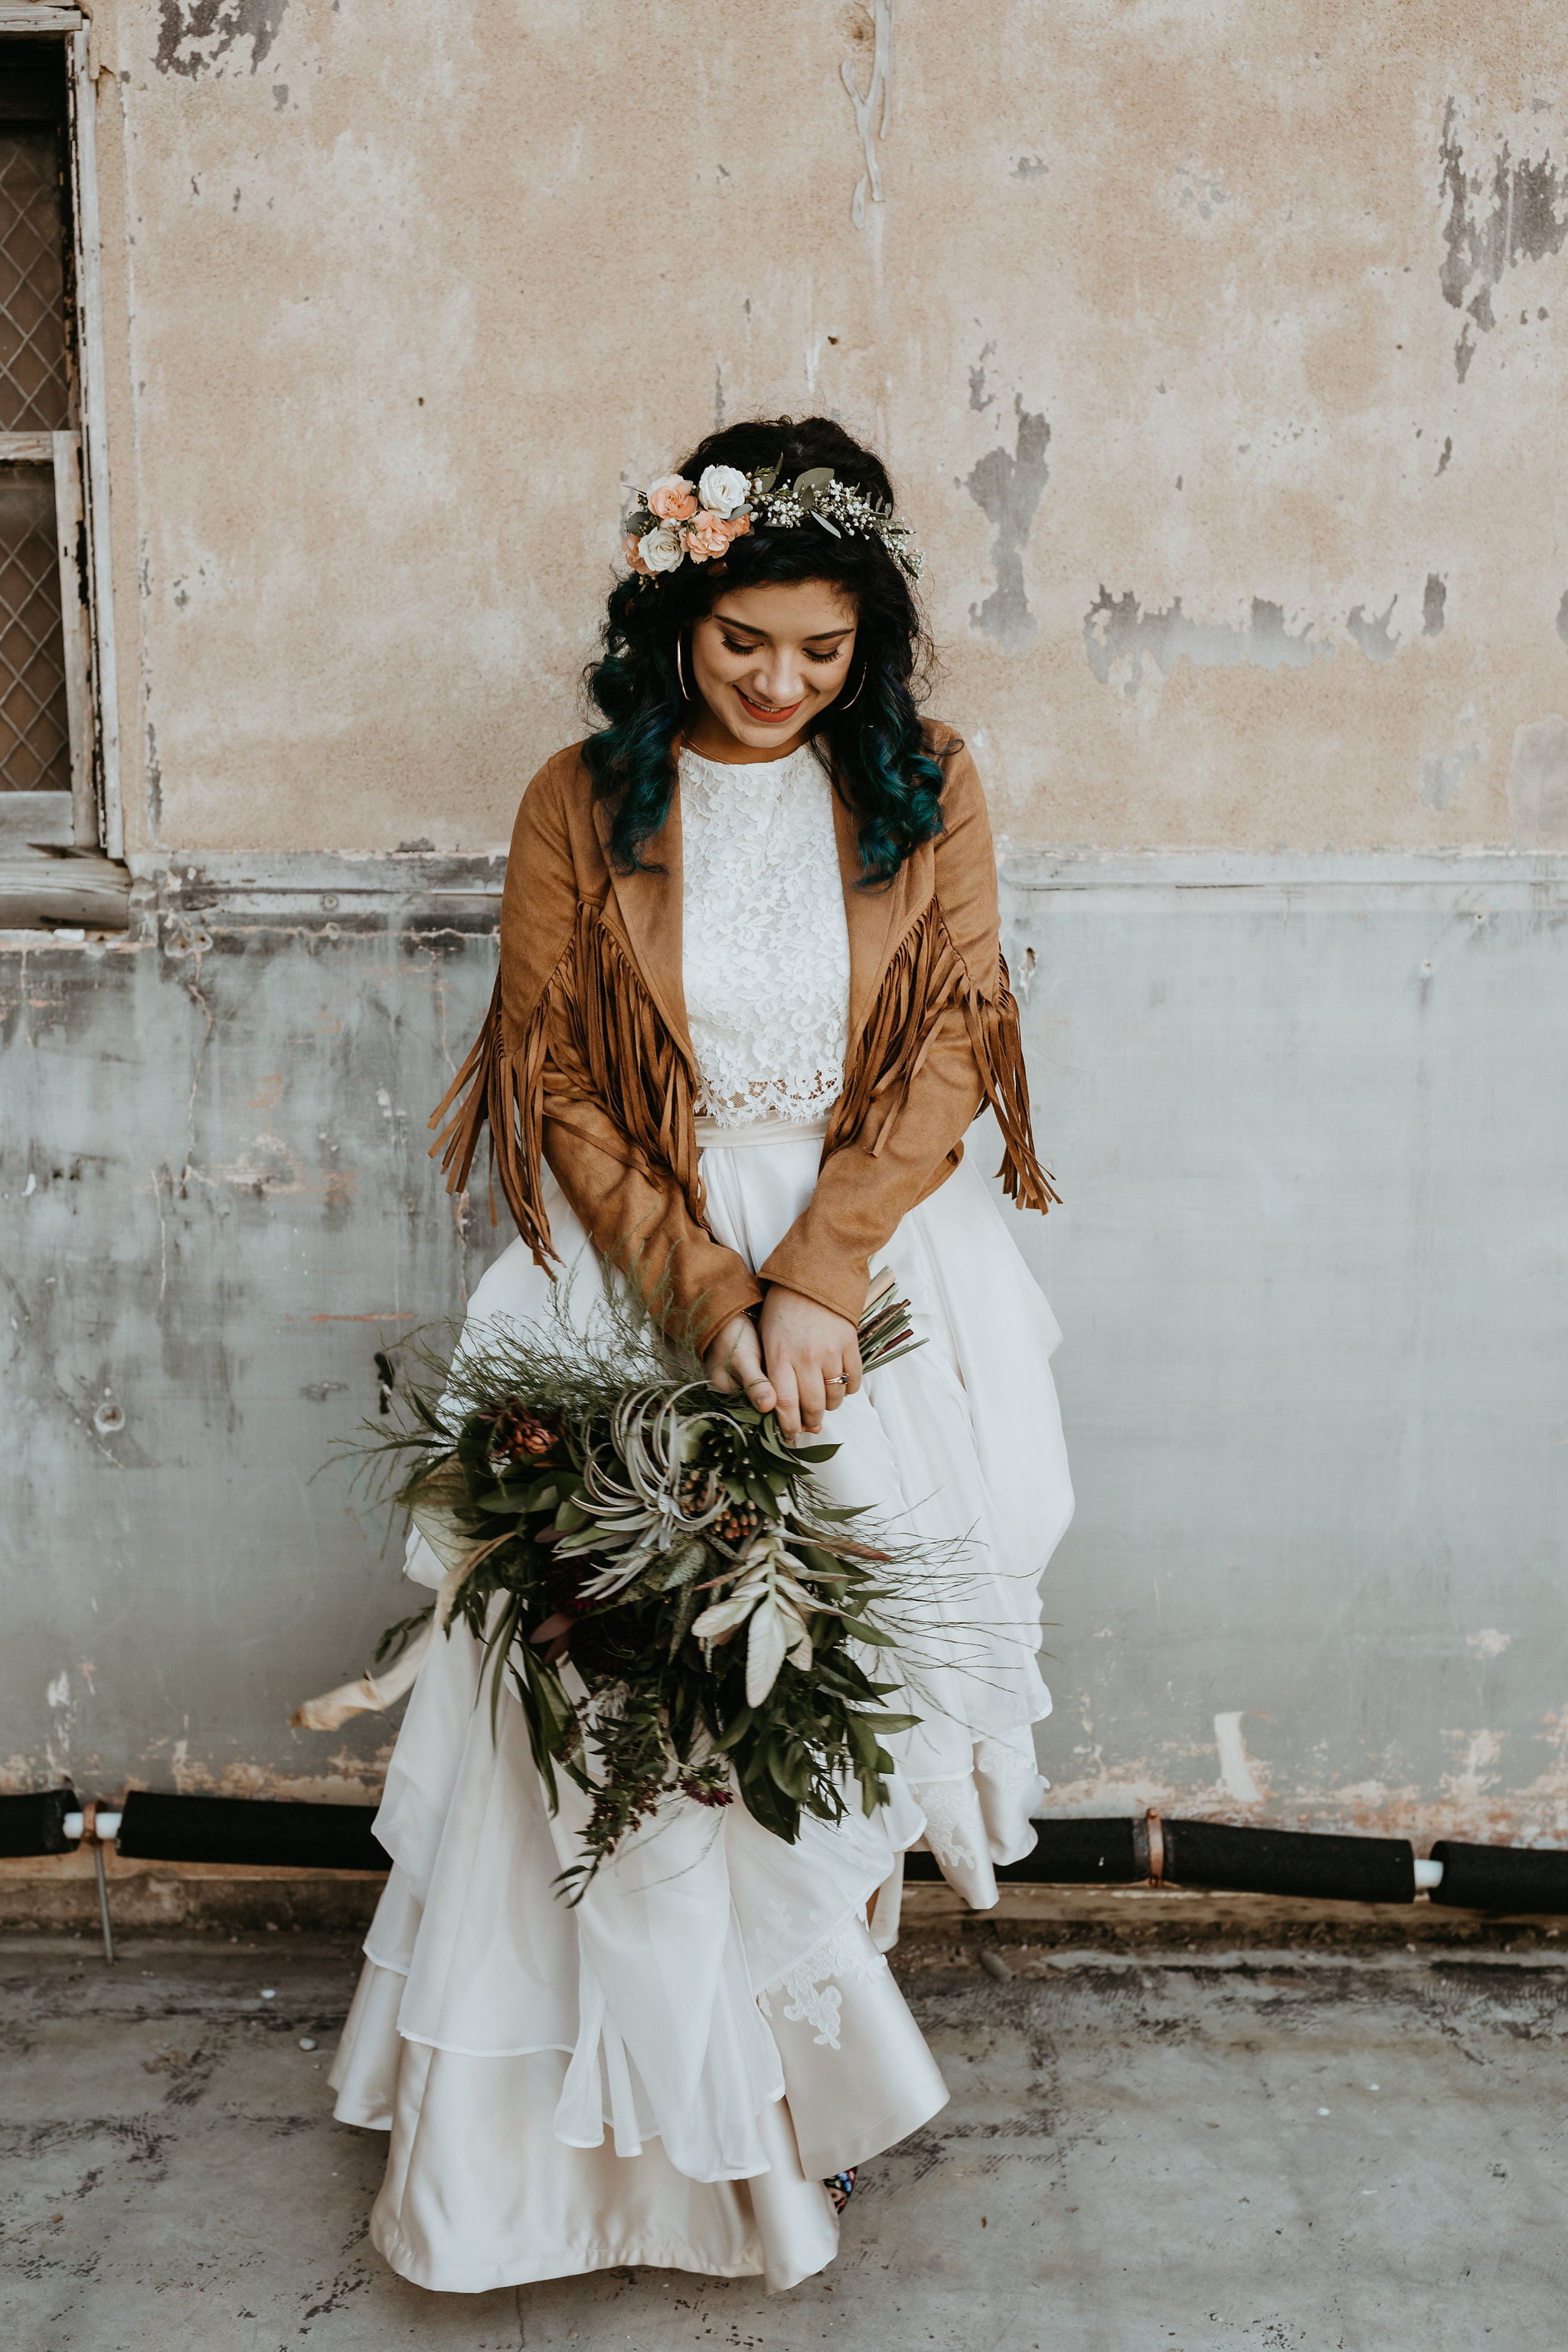 Real advice from Real Brides - this is Mouths of Brides